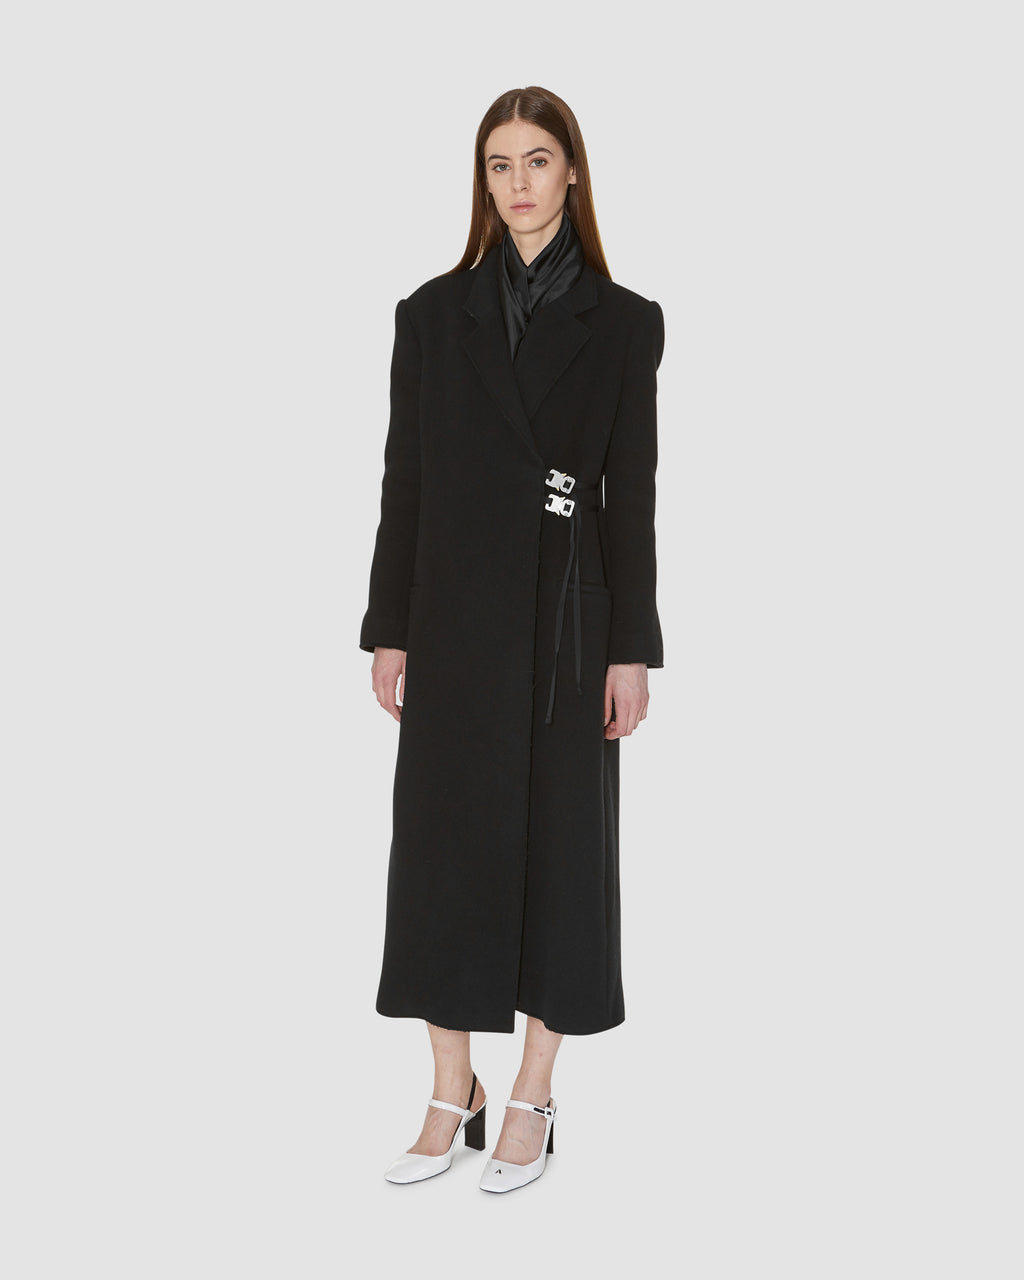 STATESMAN LONG WOOL COAT